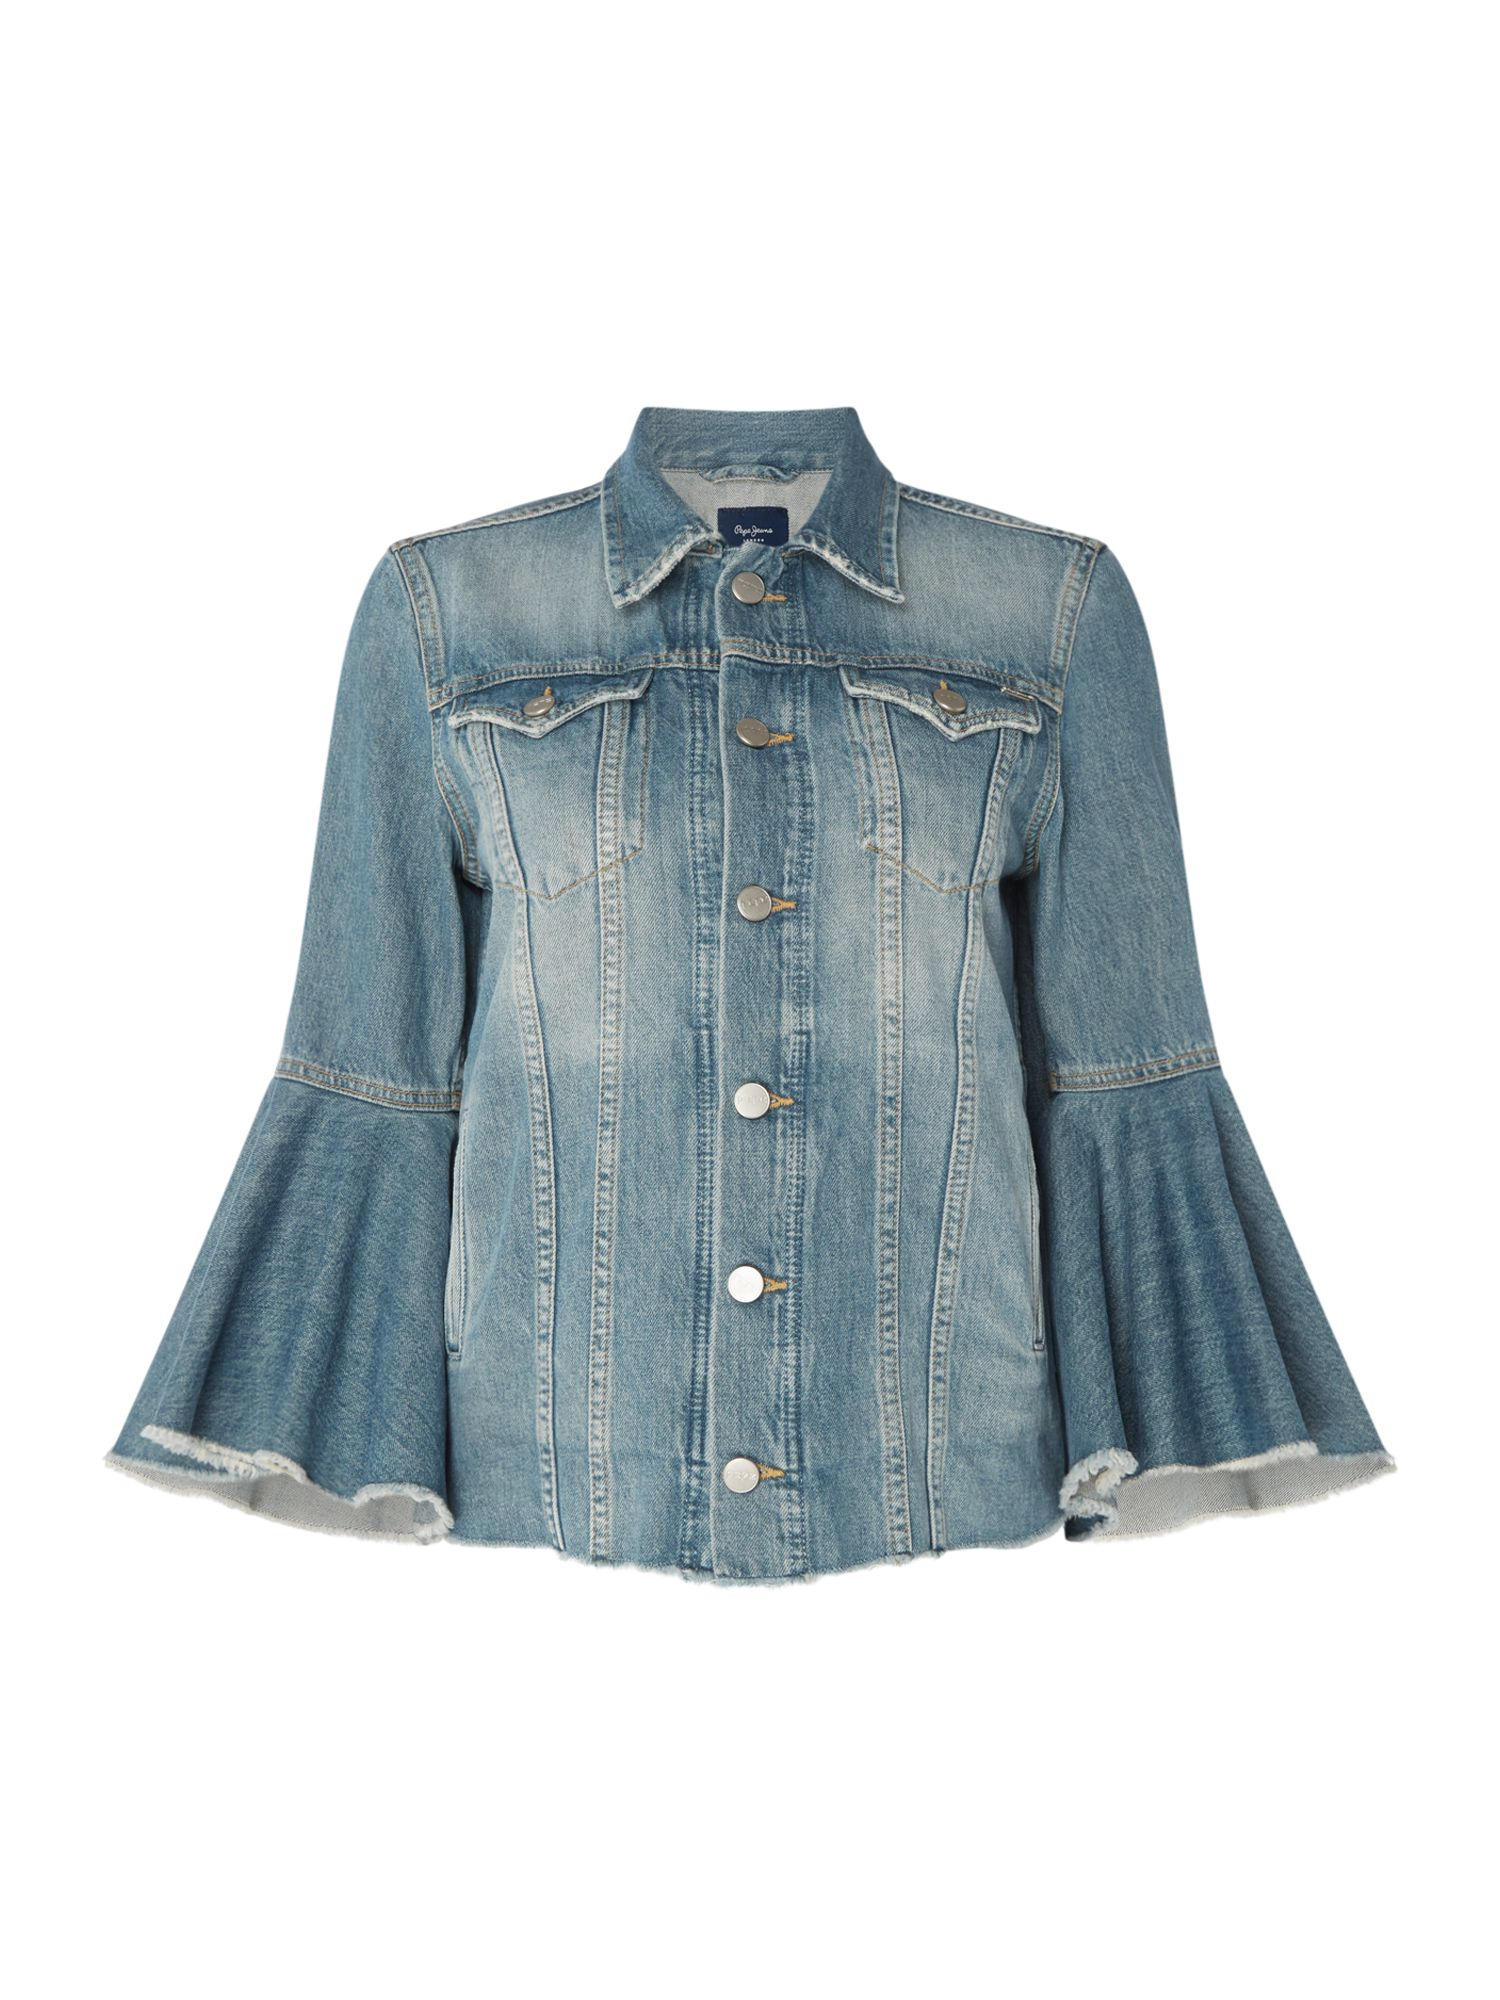 Pepe Jeans Pepe Jeans Outerwear, Blue